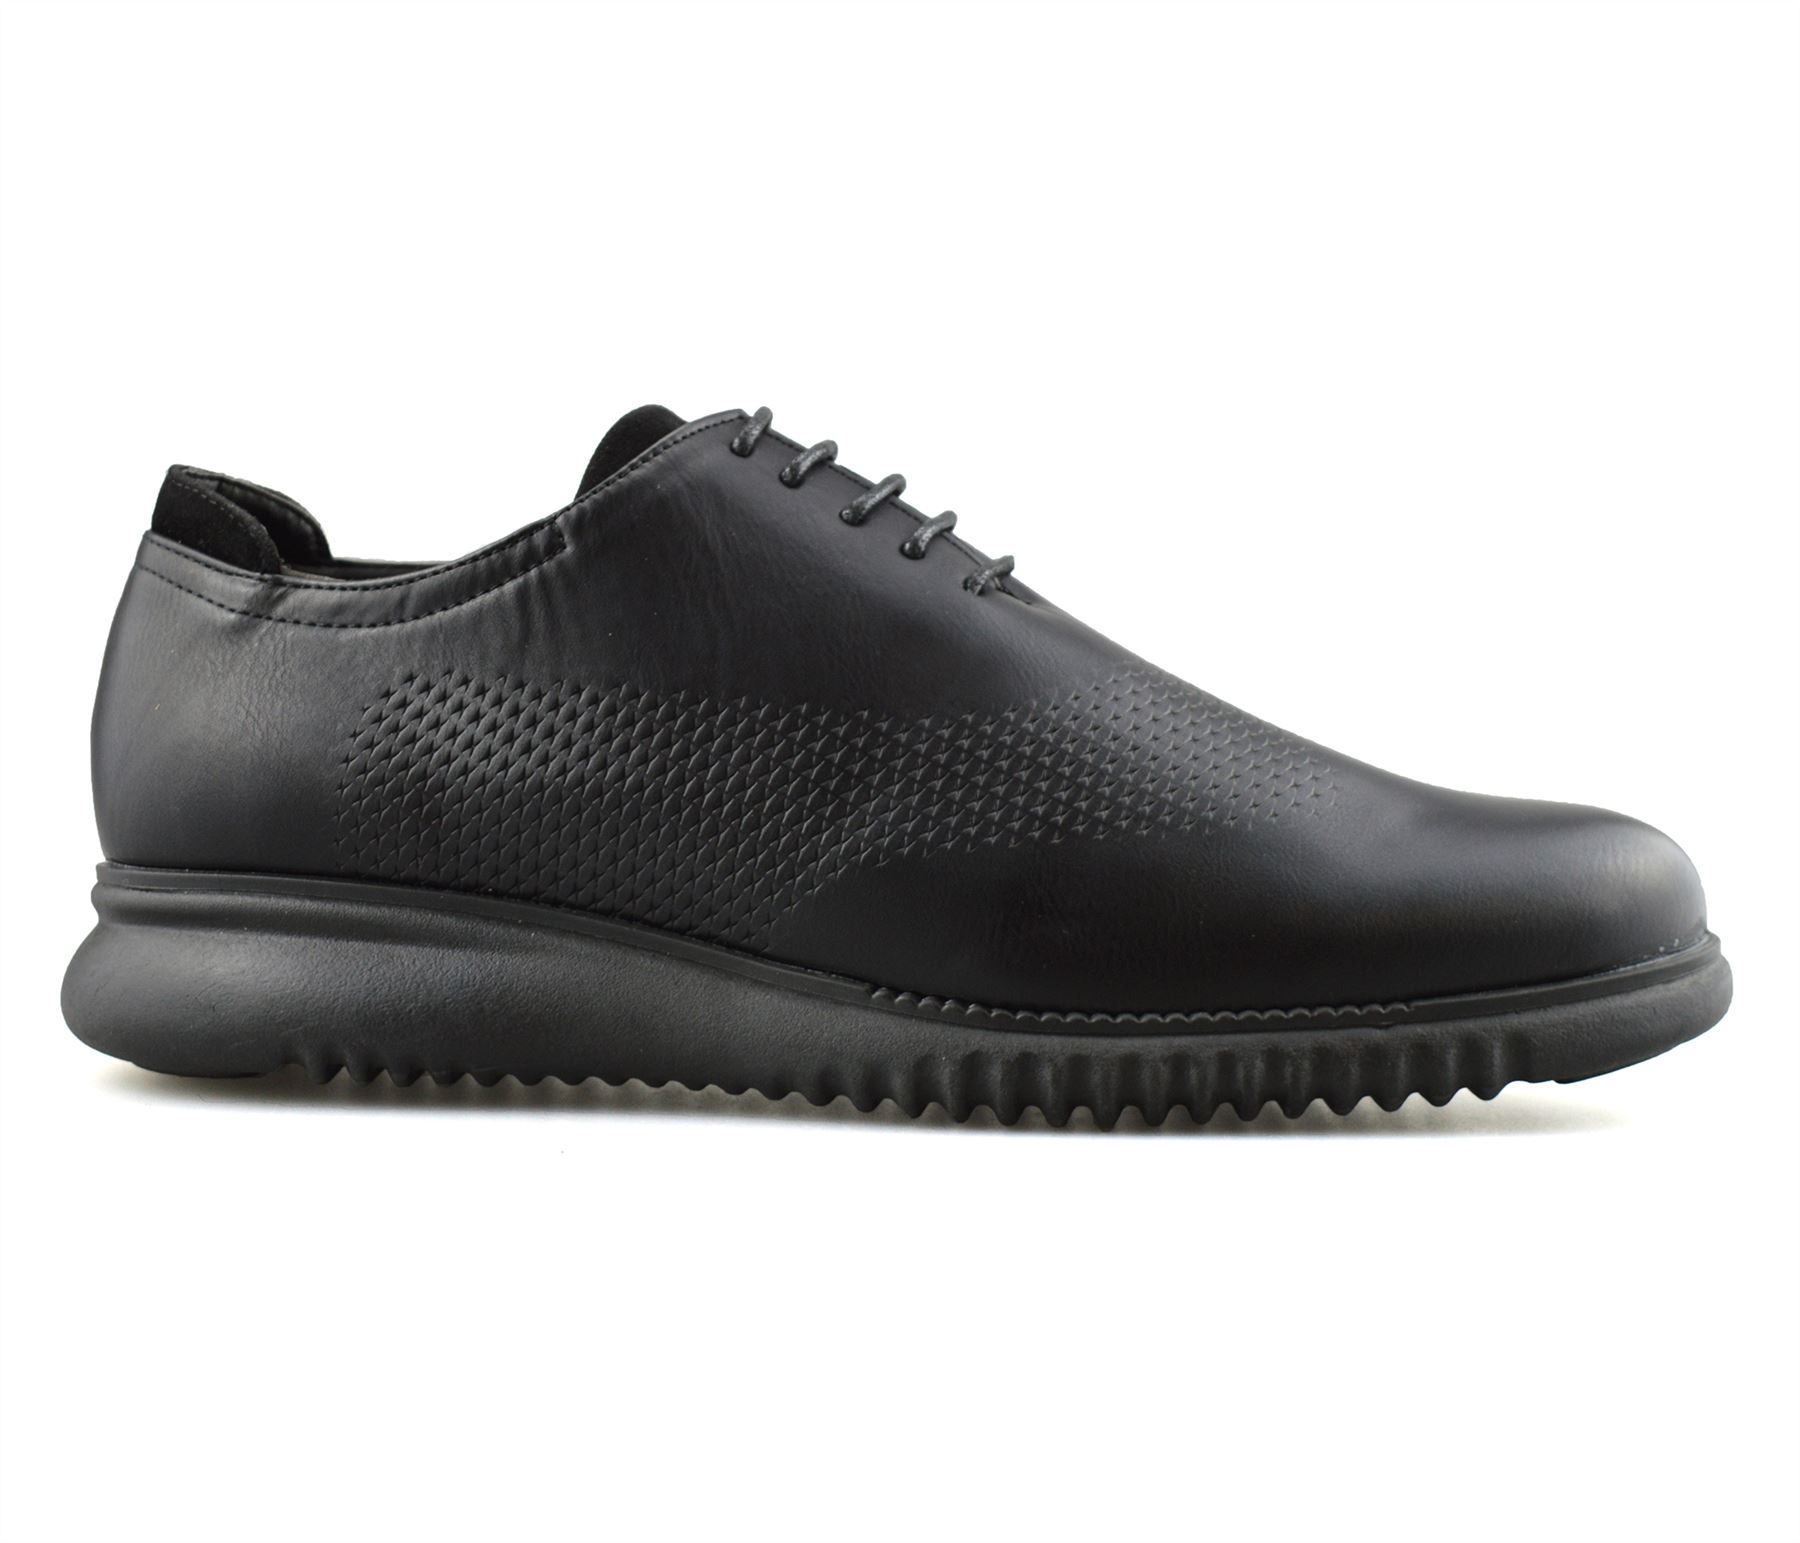 Mens-Casual-Smart-Lace-Up-Oxford-Brogue-Walking-Work-Office-Trainers-Shoes-Size thumbnail 14